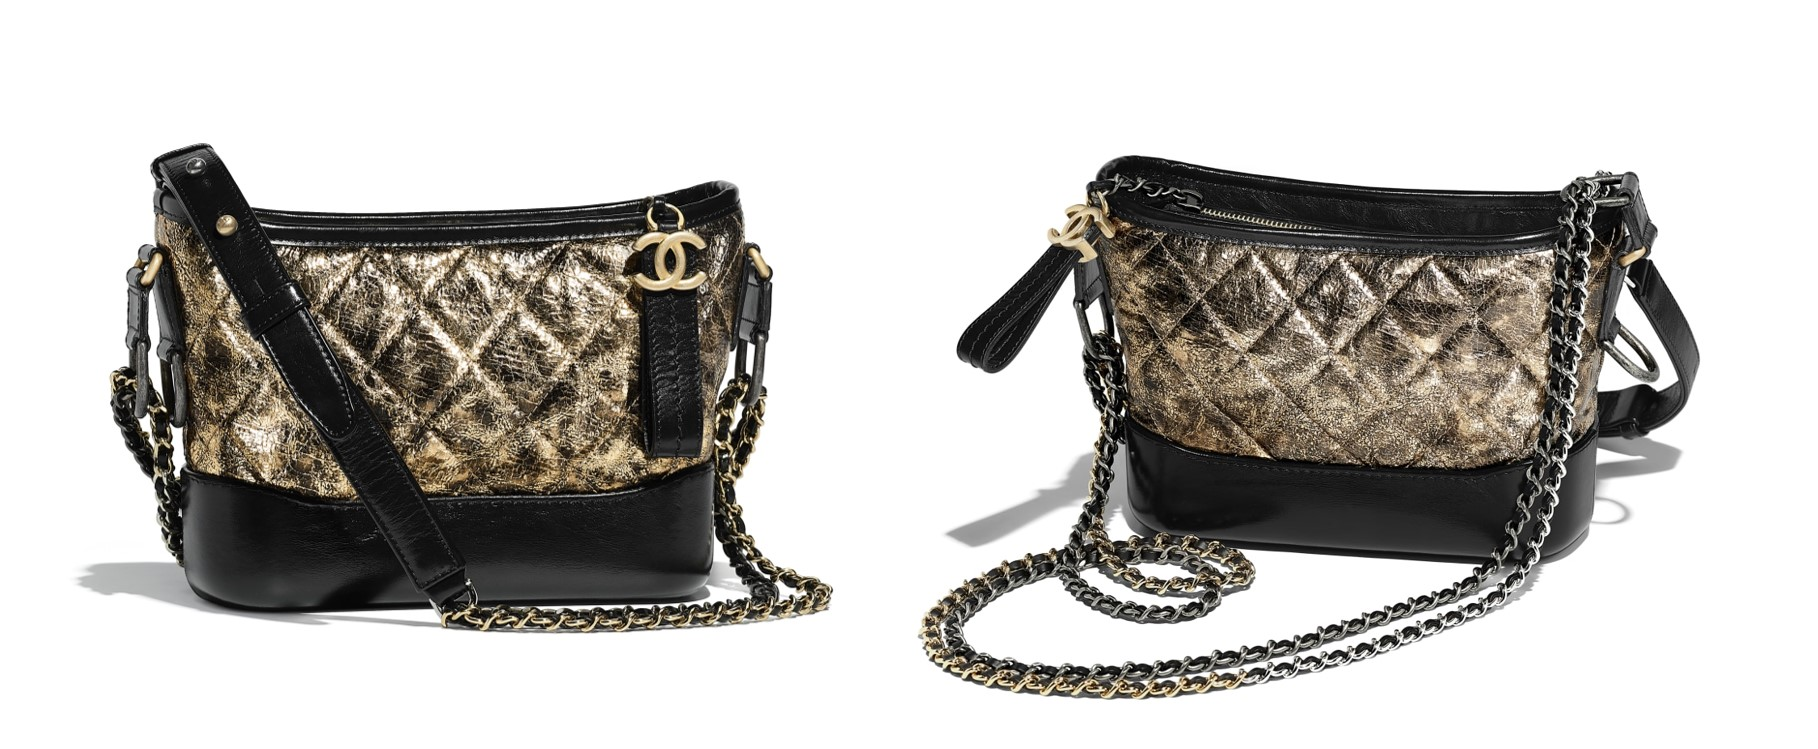 best Chanel bags to buy this season Chanel Gabrielle small hobo bag black and gold